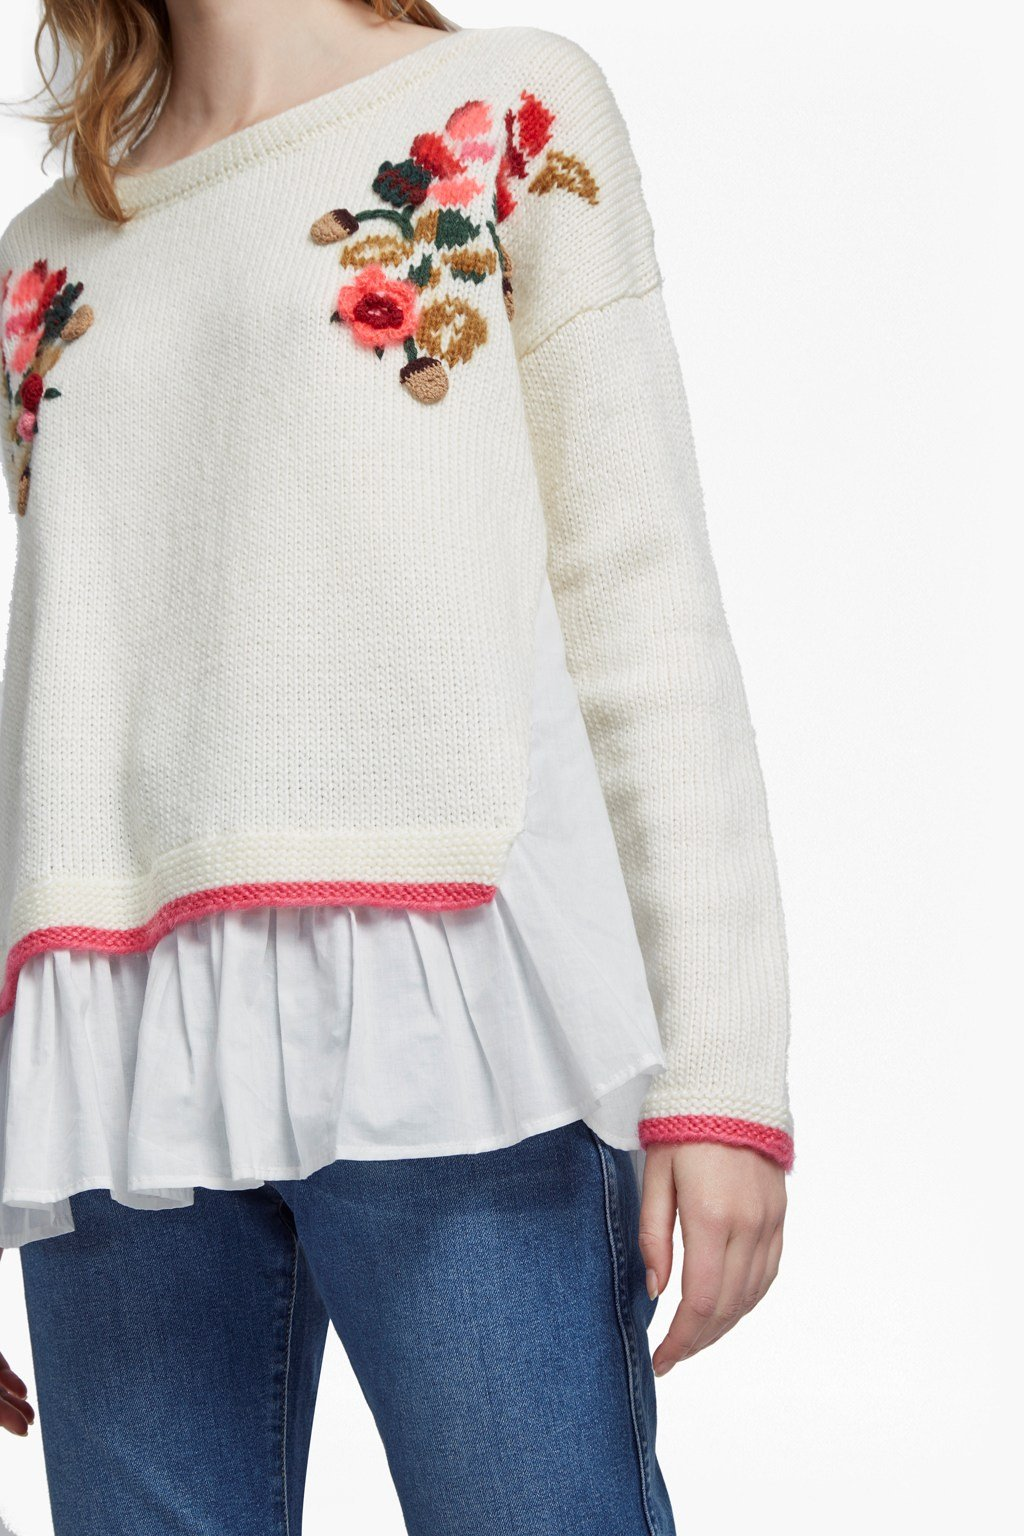 345c16d8742396 ... Vienna Knit Embroidered Jumper Sale French Connection Usa online  retailer 39f46 1b624  Avis Embellished ...